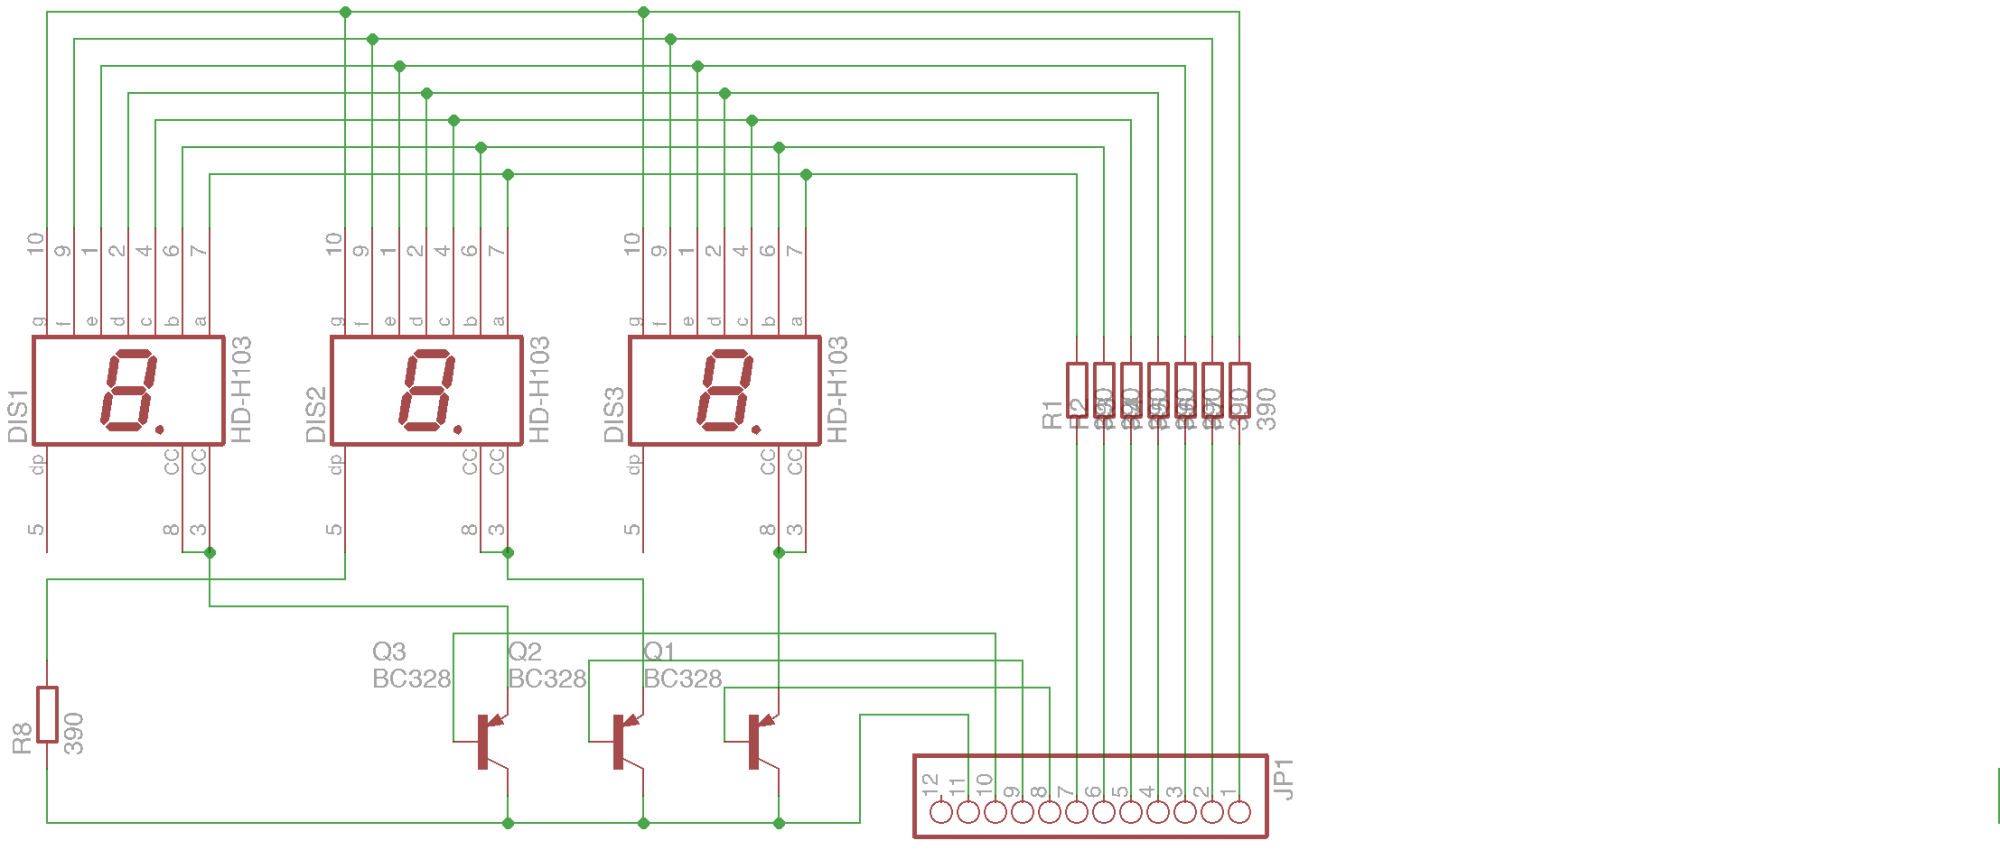 hight resolution of i created two circuit designs one using pnp transistors for multiplexing as seen in most tutorials pnp